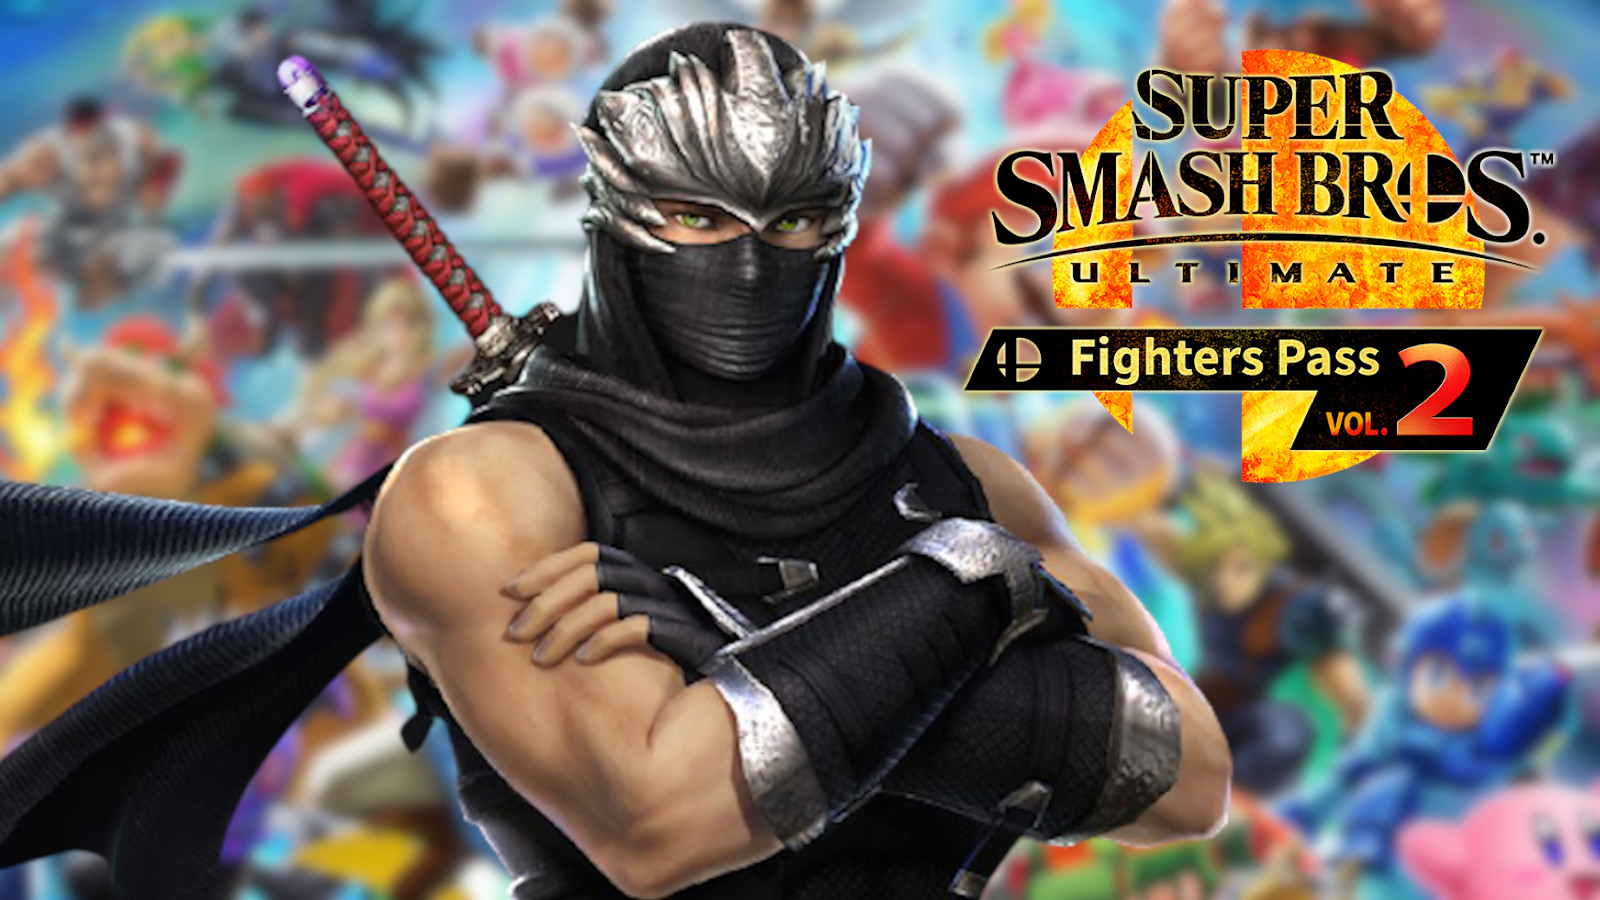 Ninja Gaiden's Ryu Hayabusa in Smash Ultimate